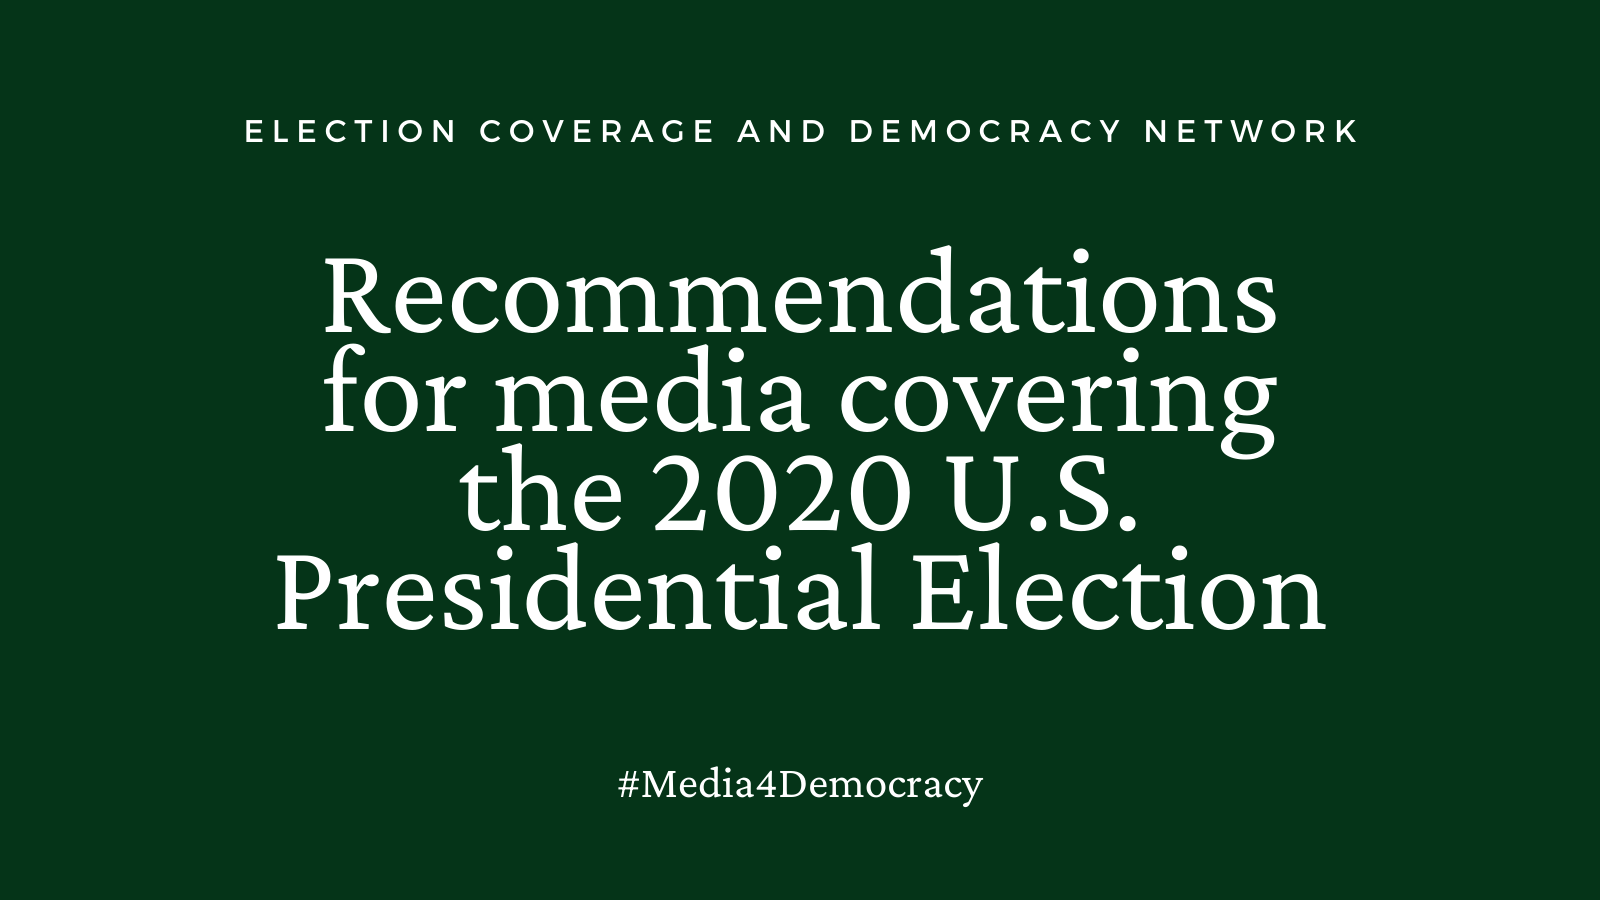 Recommendations for Media Covering the 2020 U.S. Presidential Election, Election Coverage and Democracy Network